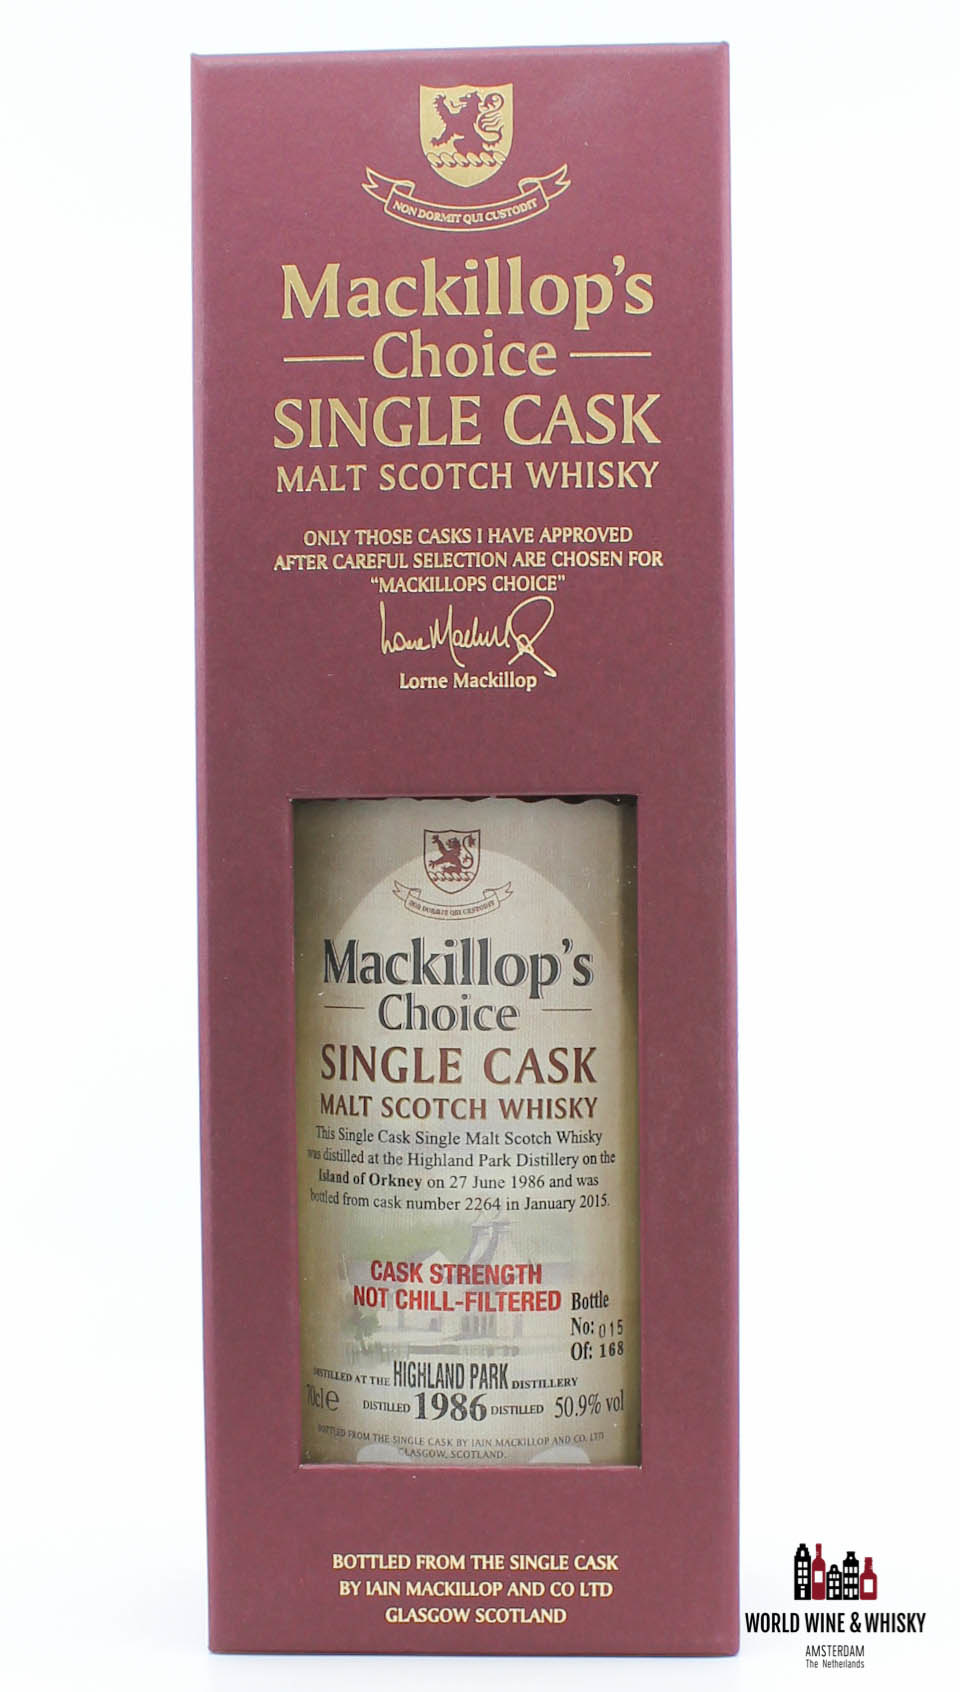 Highland Park Highland Park 28 Years Old 1986 2015 Single Cask - Cask 2264 - Mackillop's Choice 50.9% (one of 168 bottles)